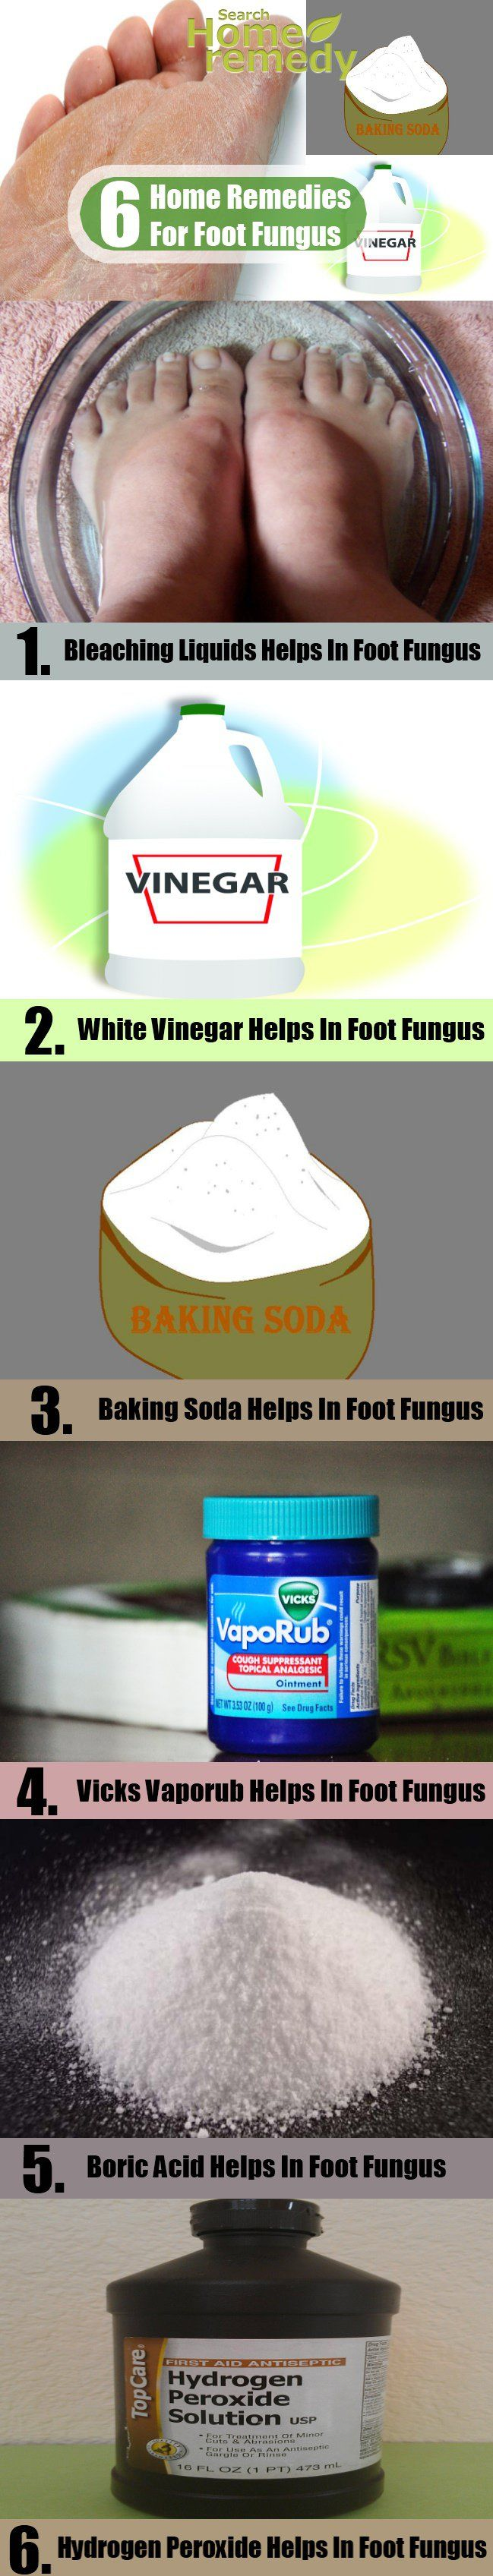 6 Effective Home Remedies For Foot Fungus